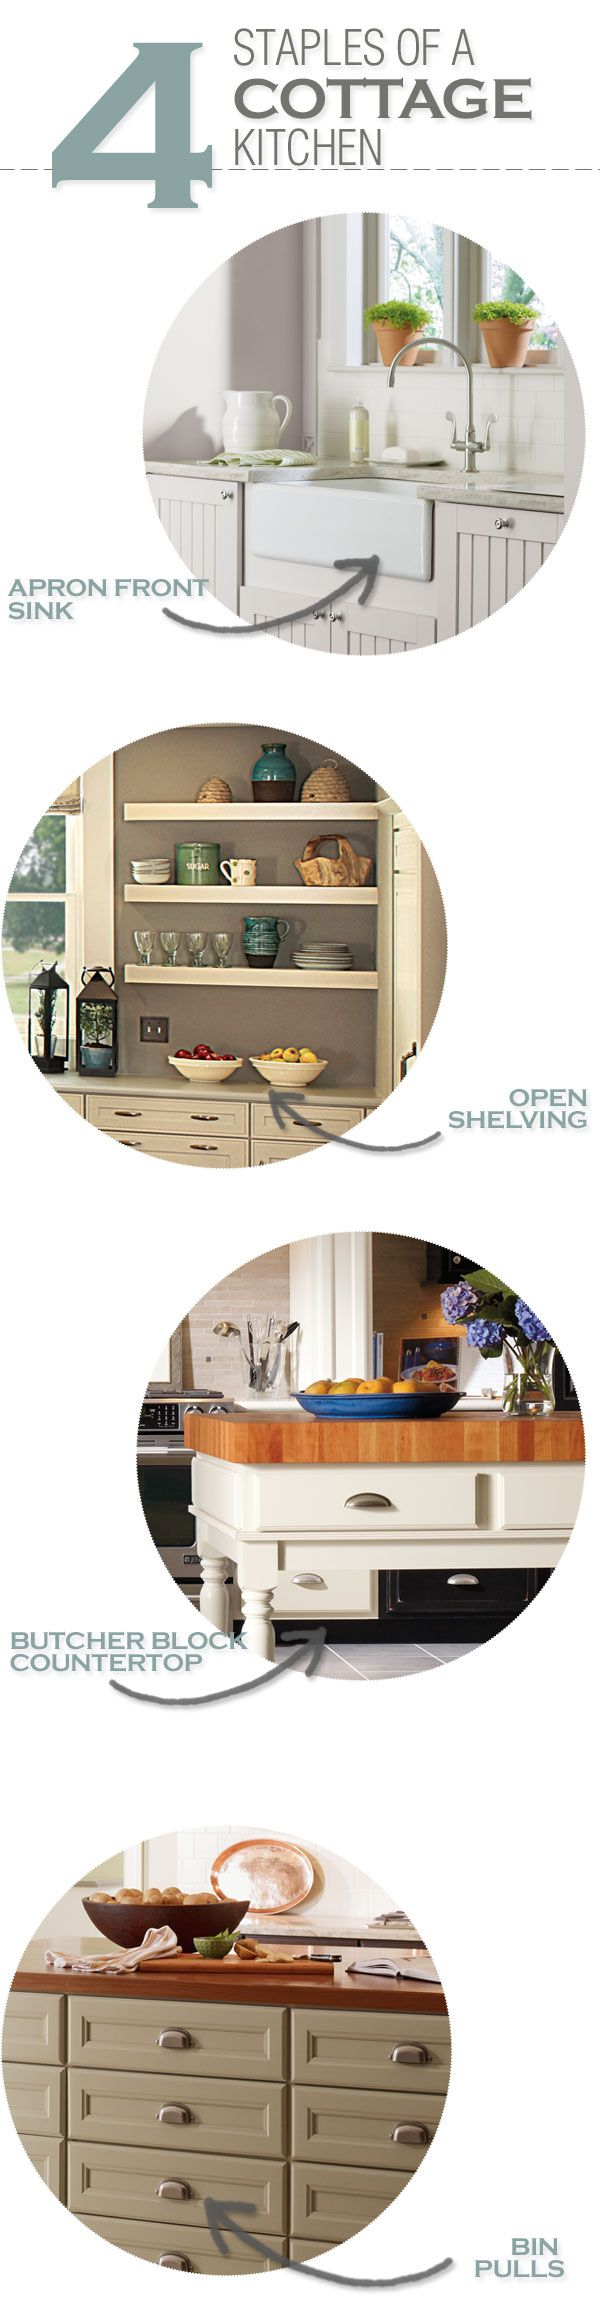 159 best kitchen ideas images on Pinterest | Home ideas, Dreams and ...